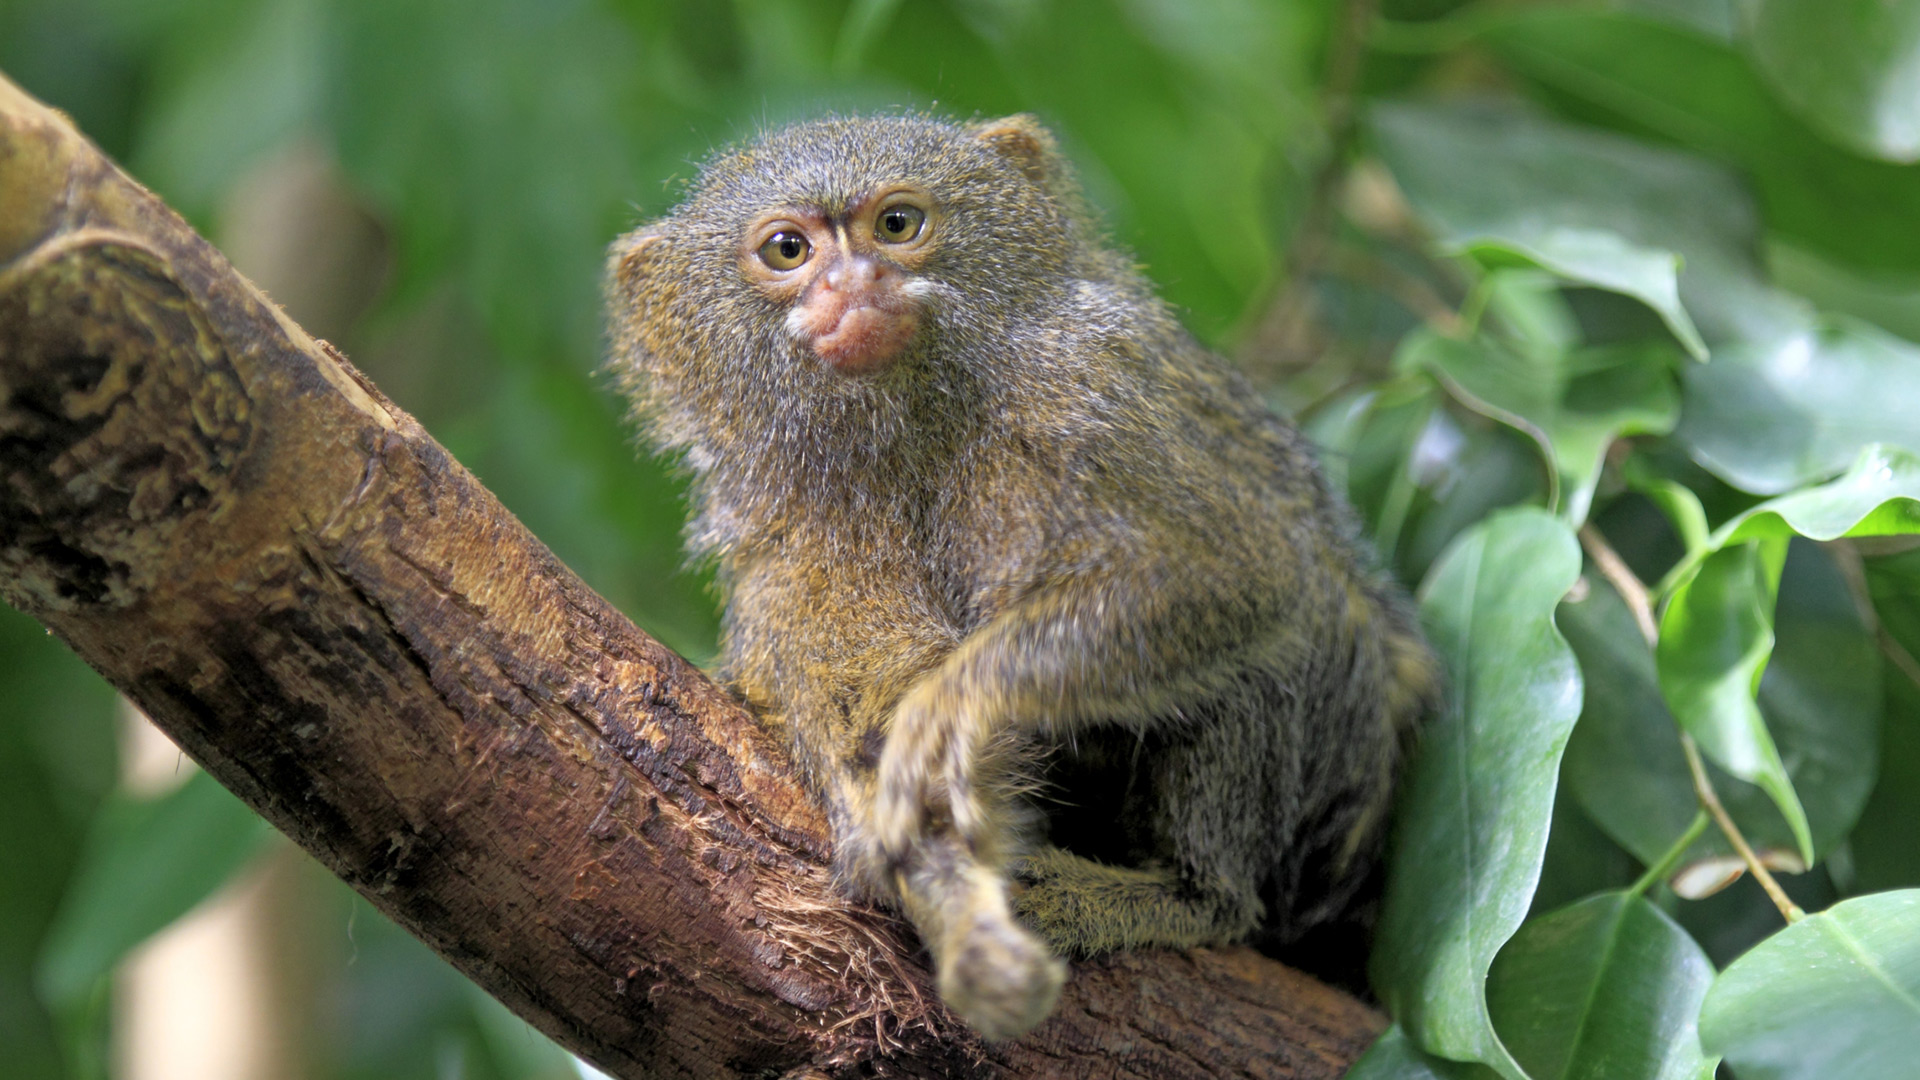 Pygmy marmoset | Sheknows.com